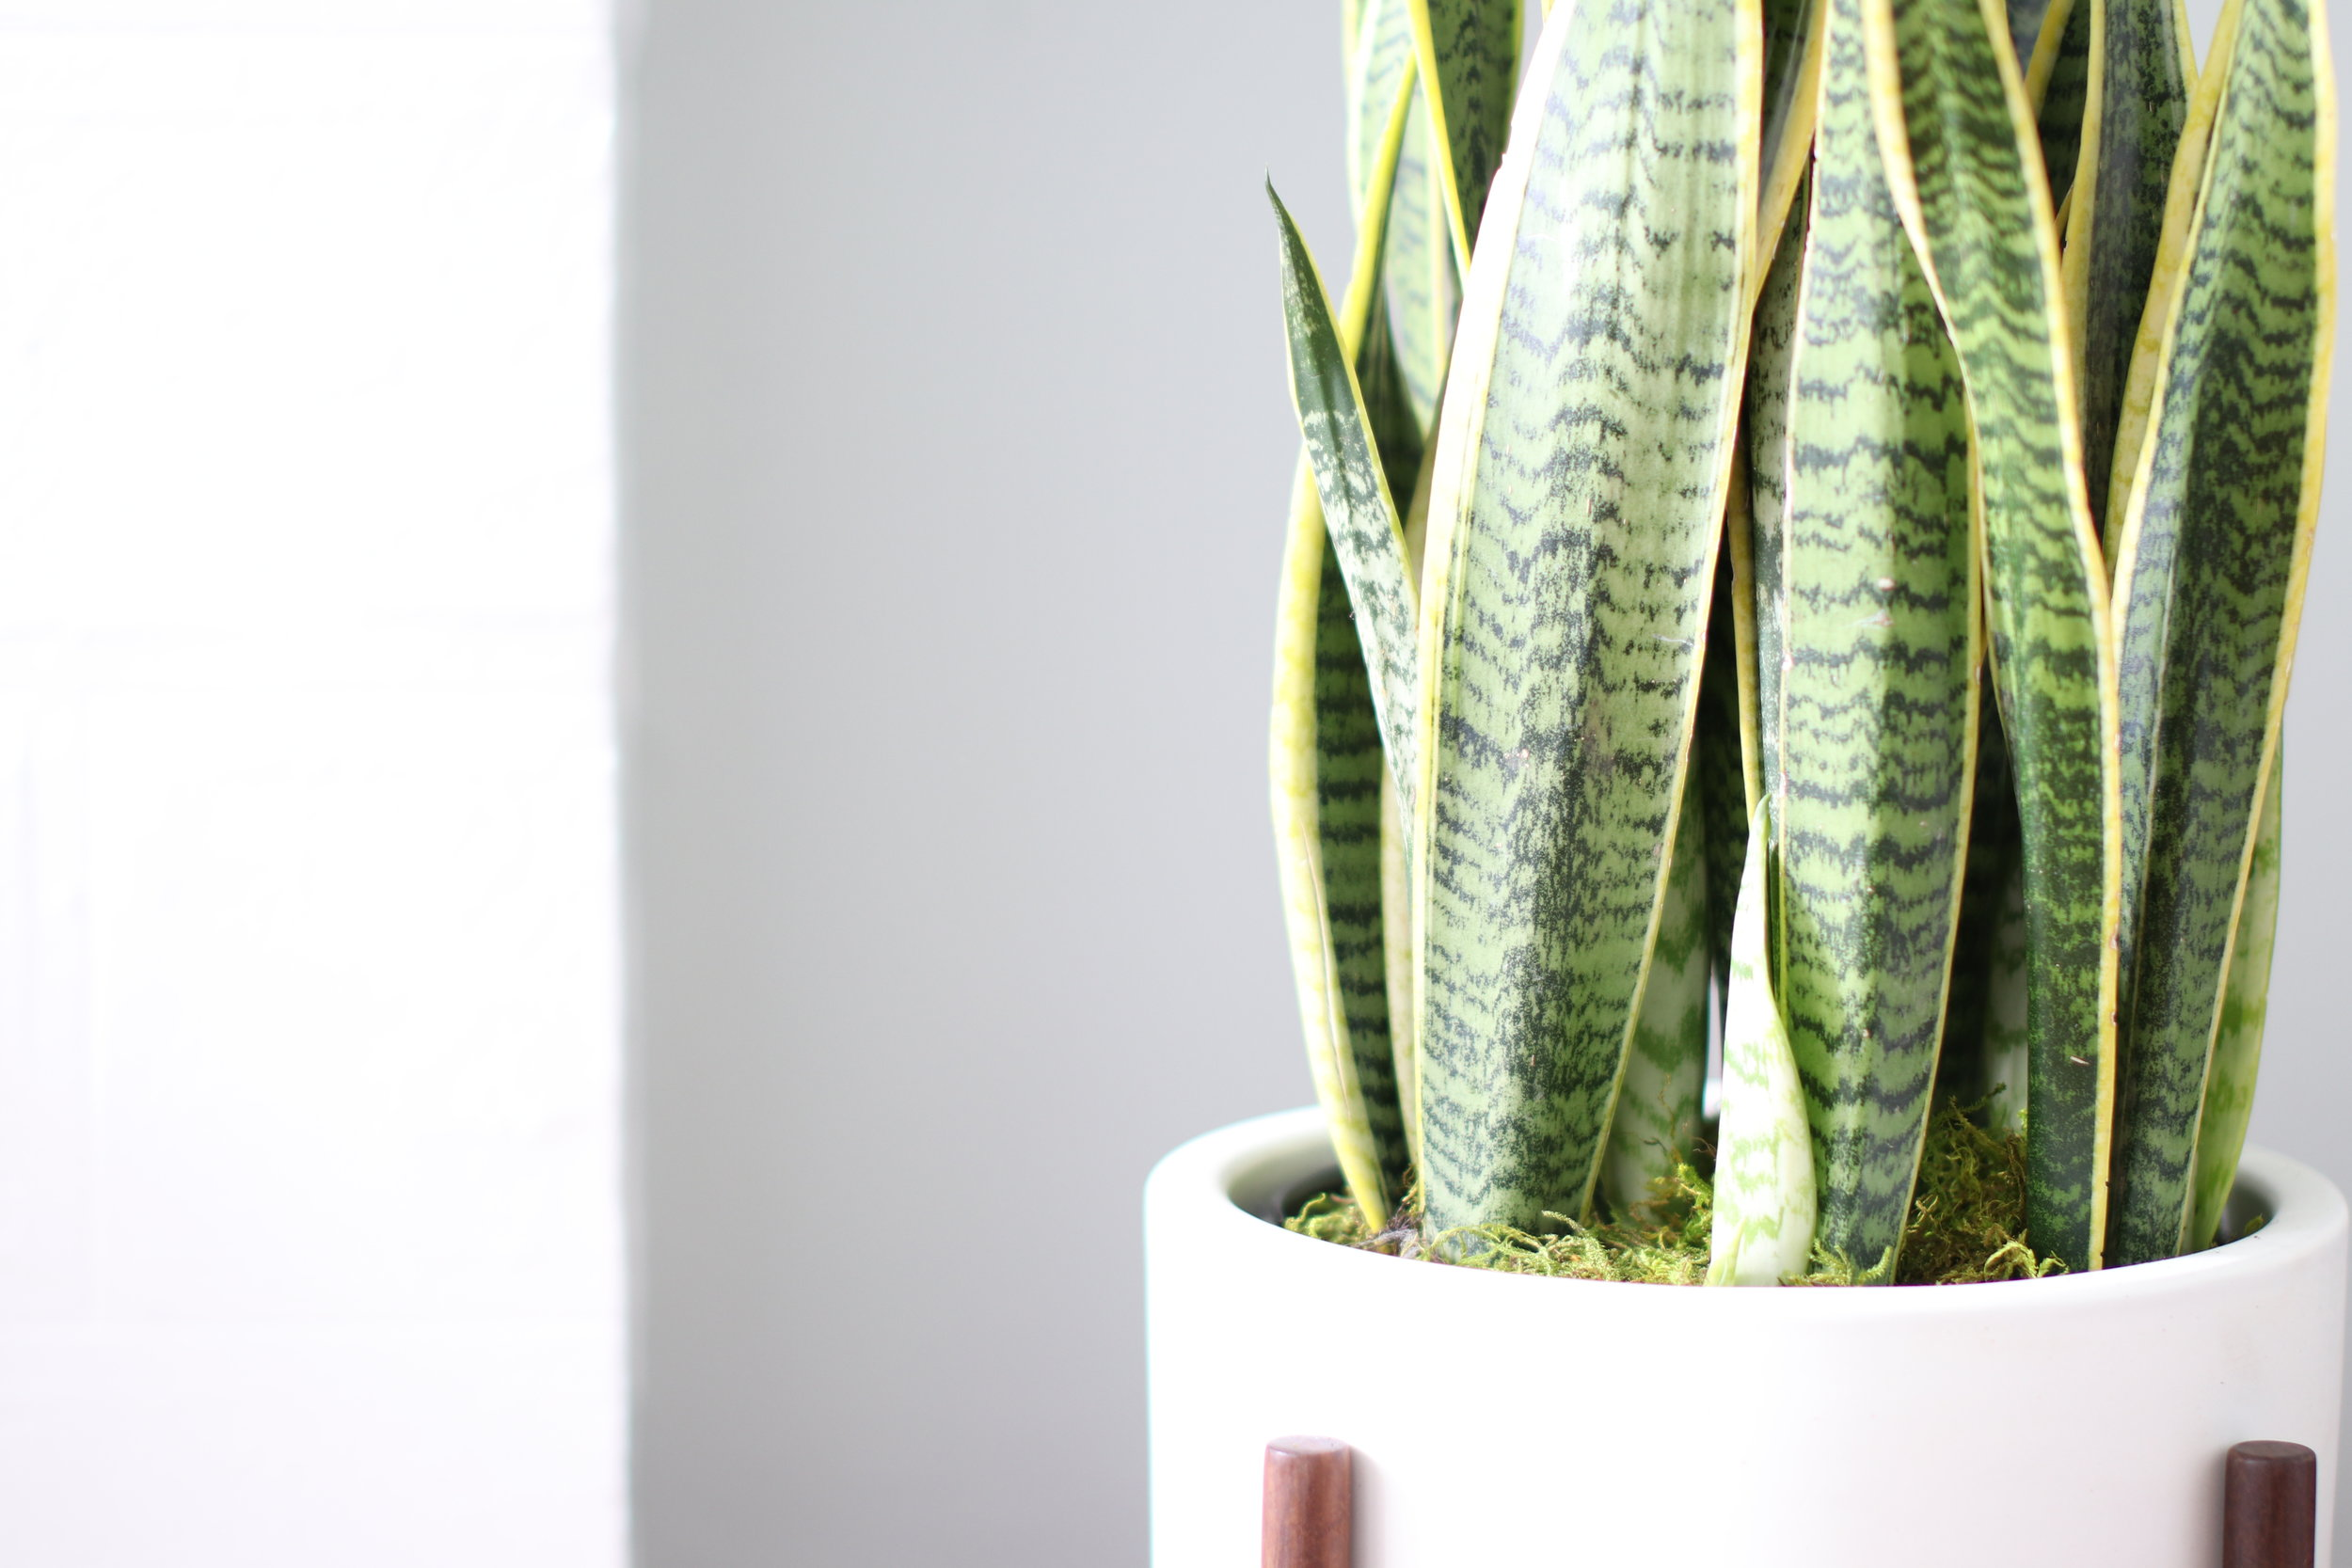 Indoor plants, potted & delivered. - Premium plants paired with stylish ceramics. Order online at leonandgeorge.com